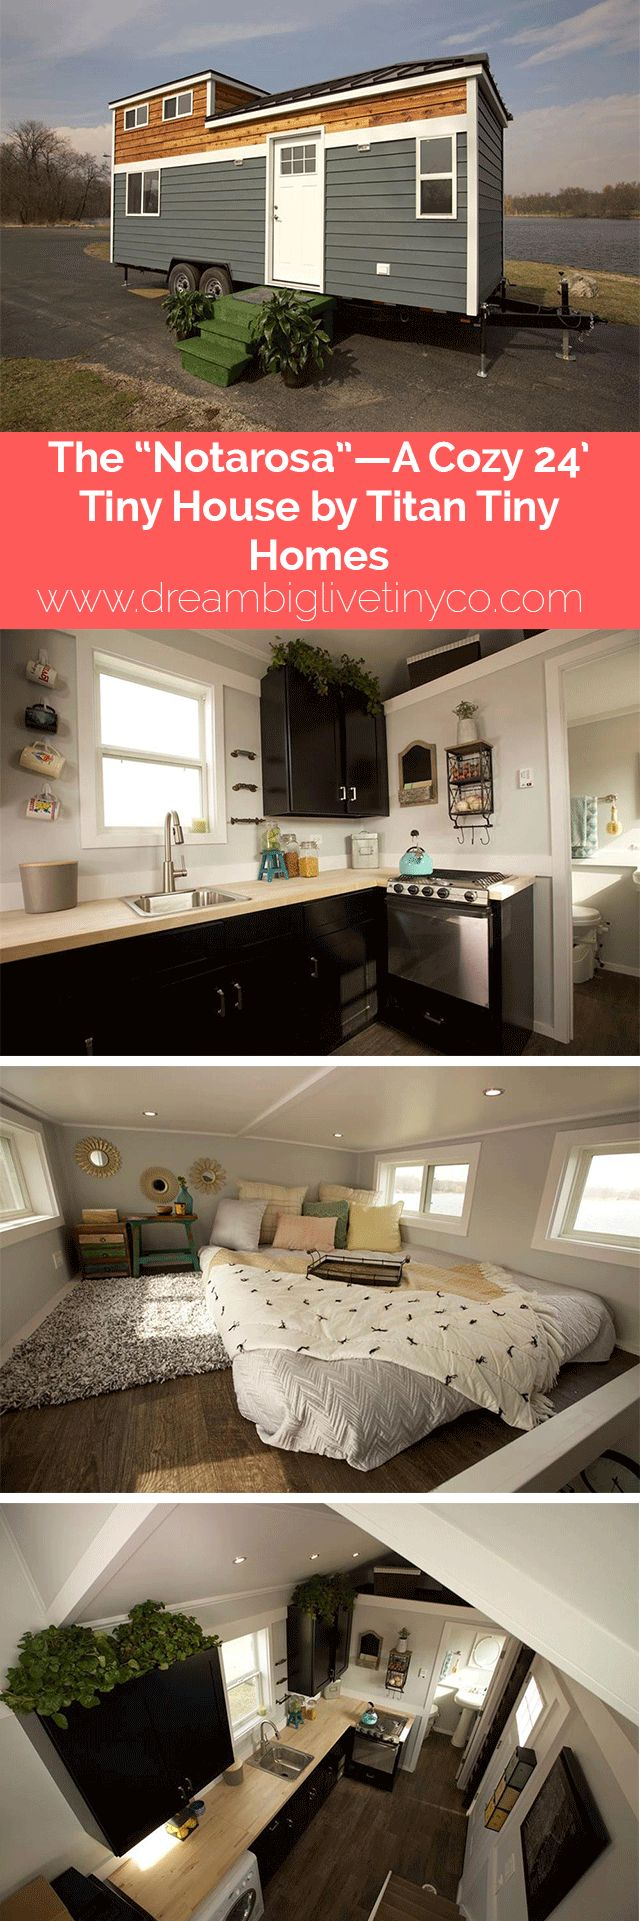 220 Best Featured Tiny Houses Images On Pinterest